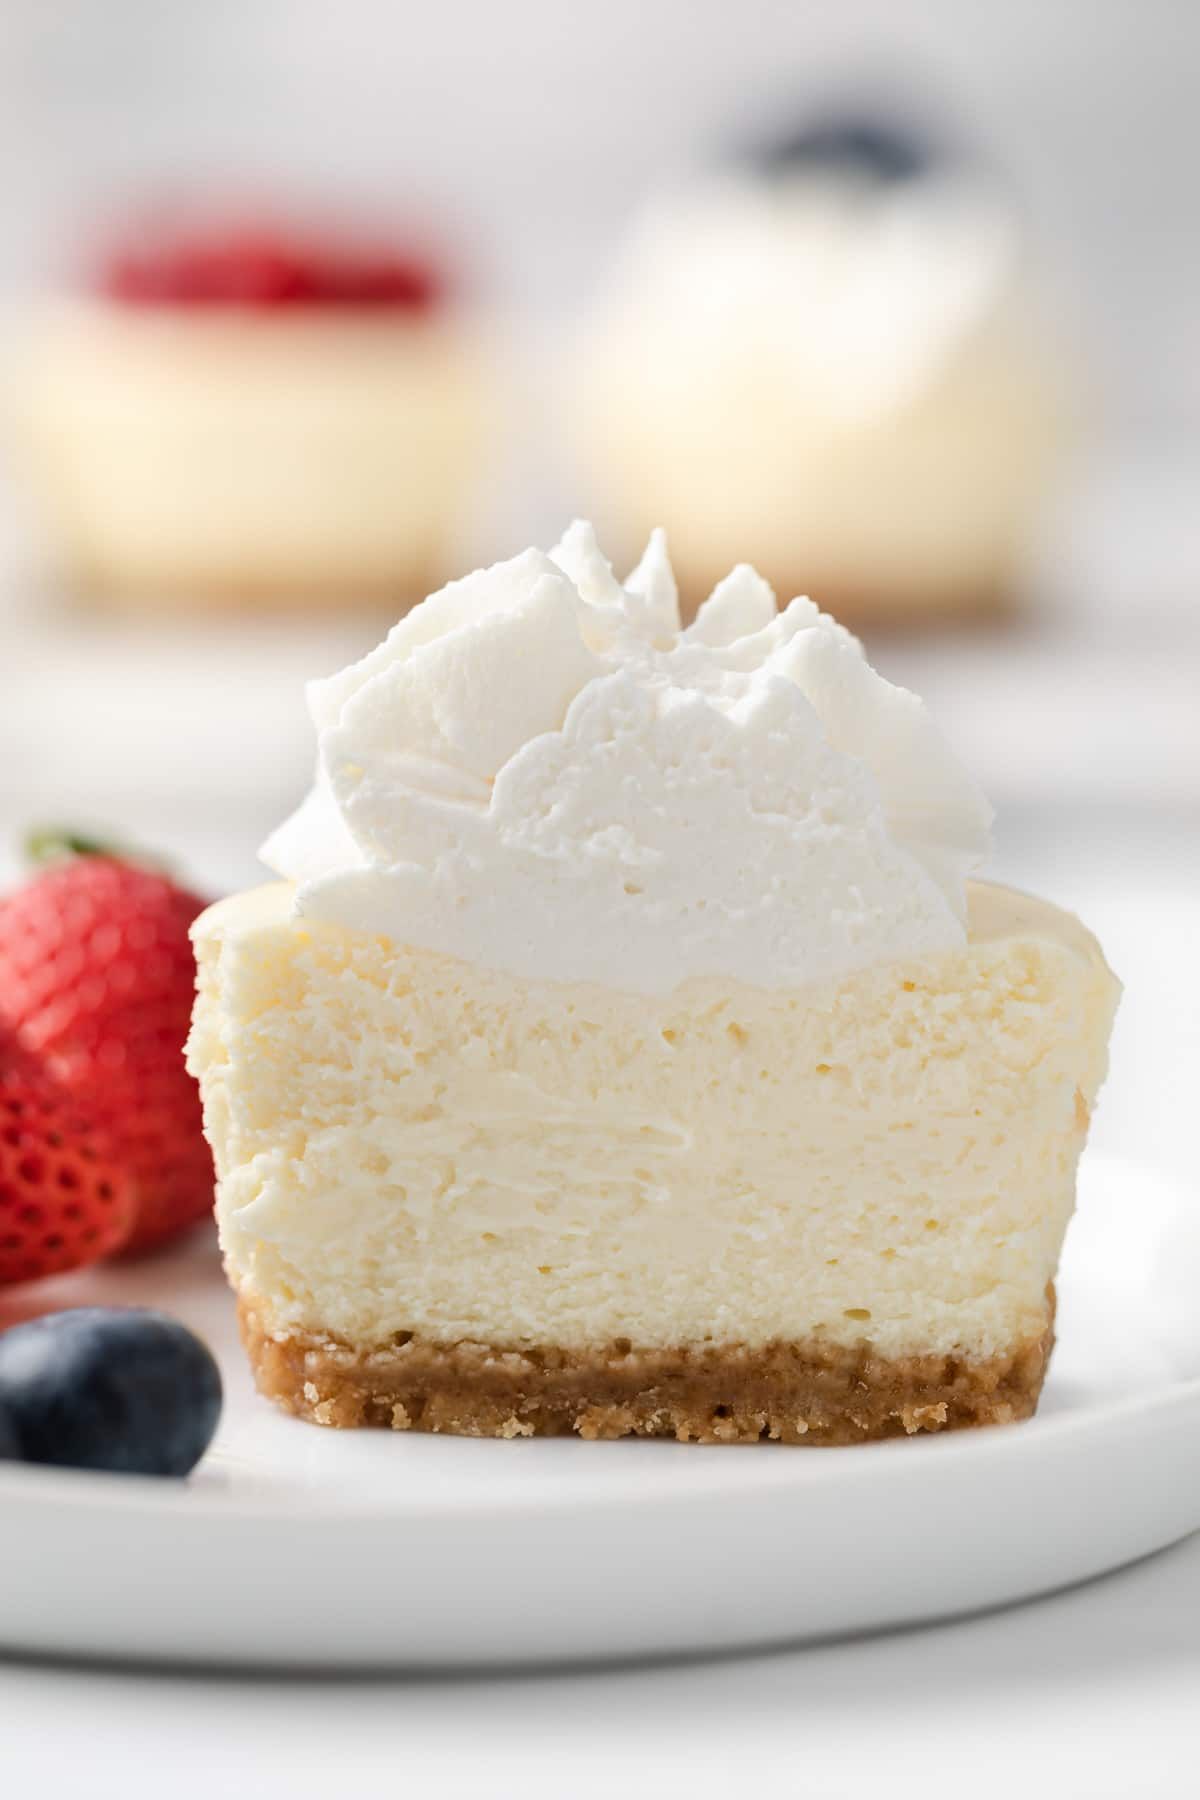 close up of mini cheesecake sliced so the creamy inside is visible